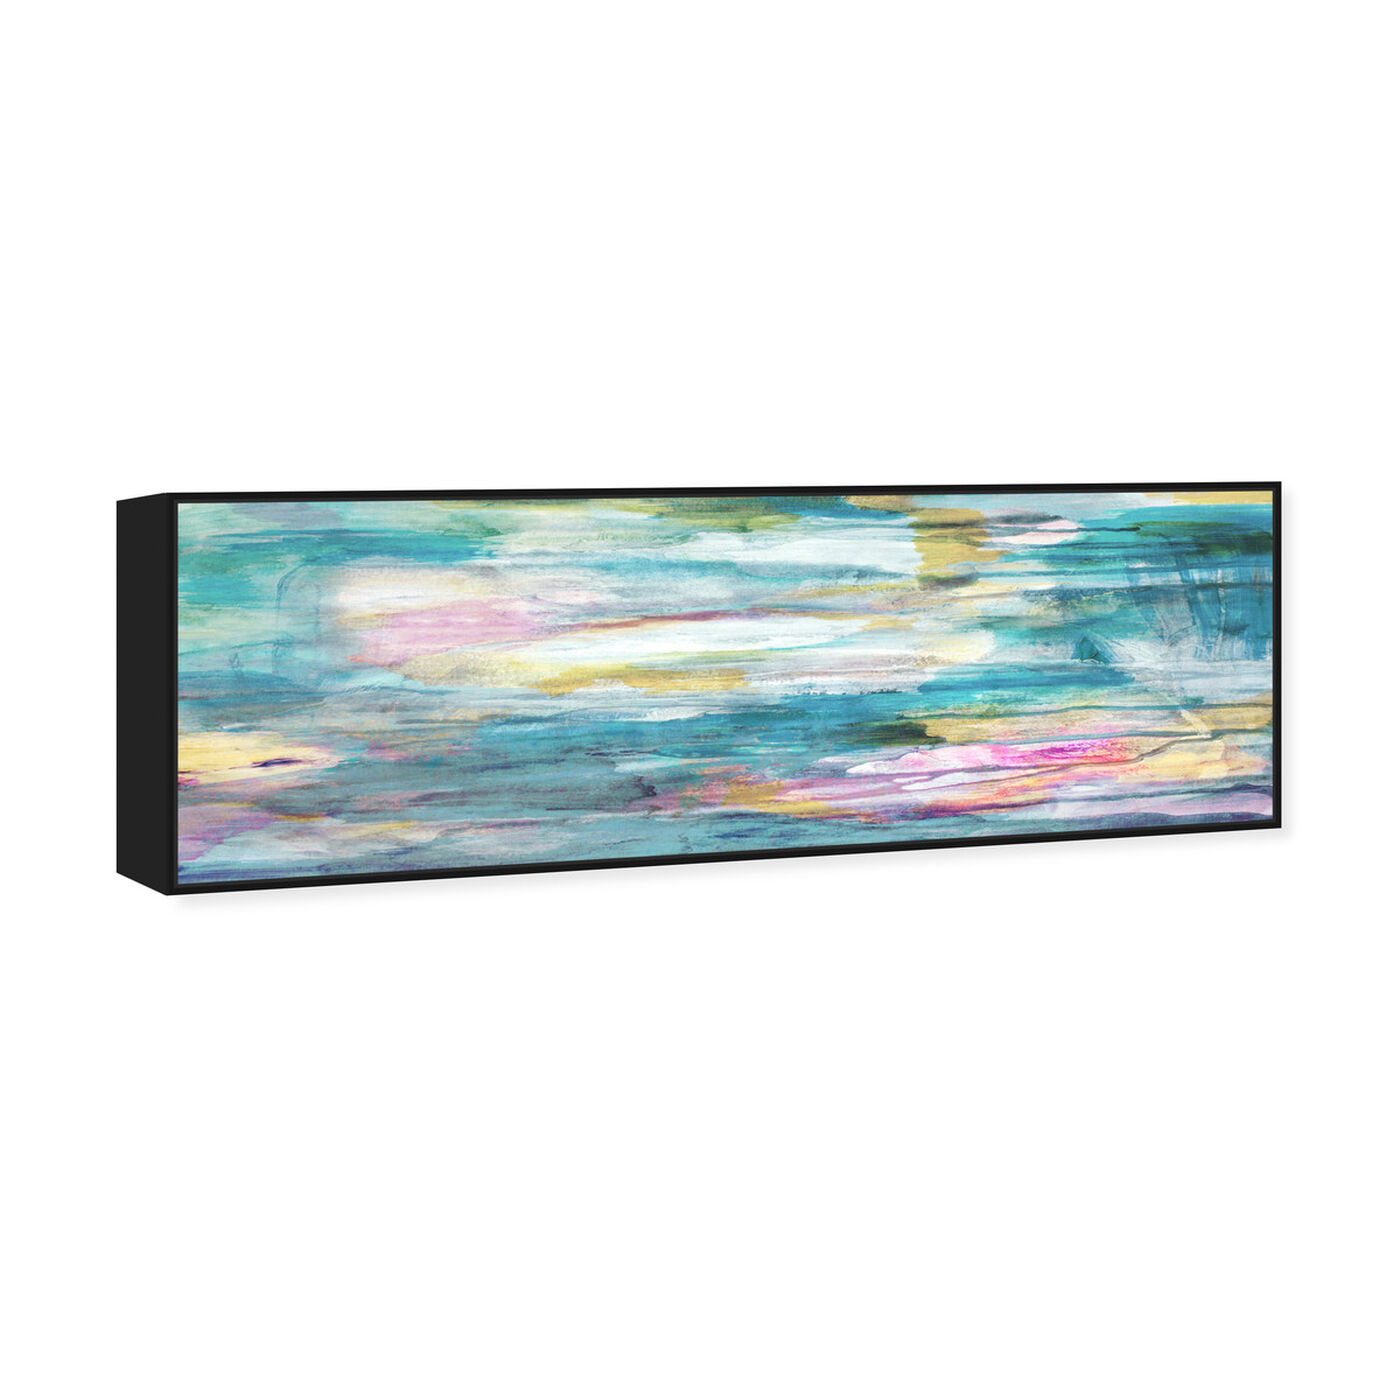 Angled view of The Calm Love featuring abstract and paint art.